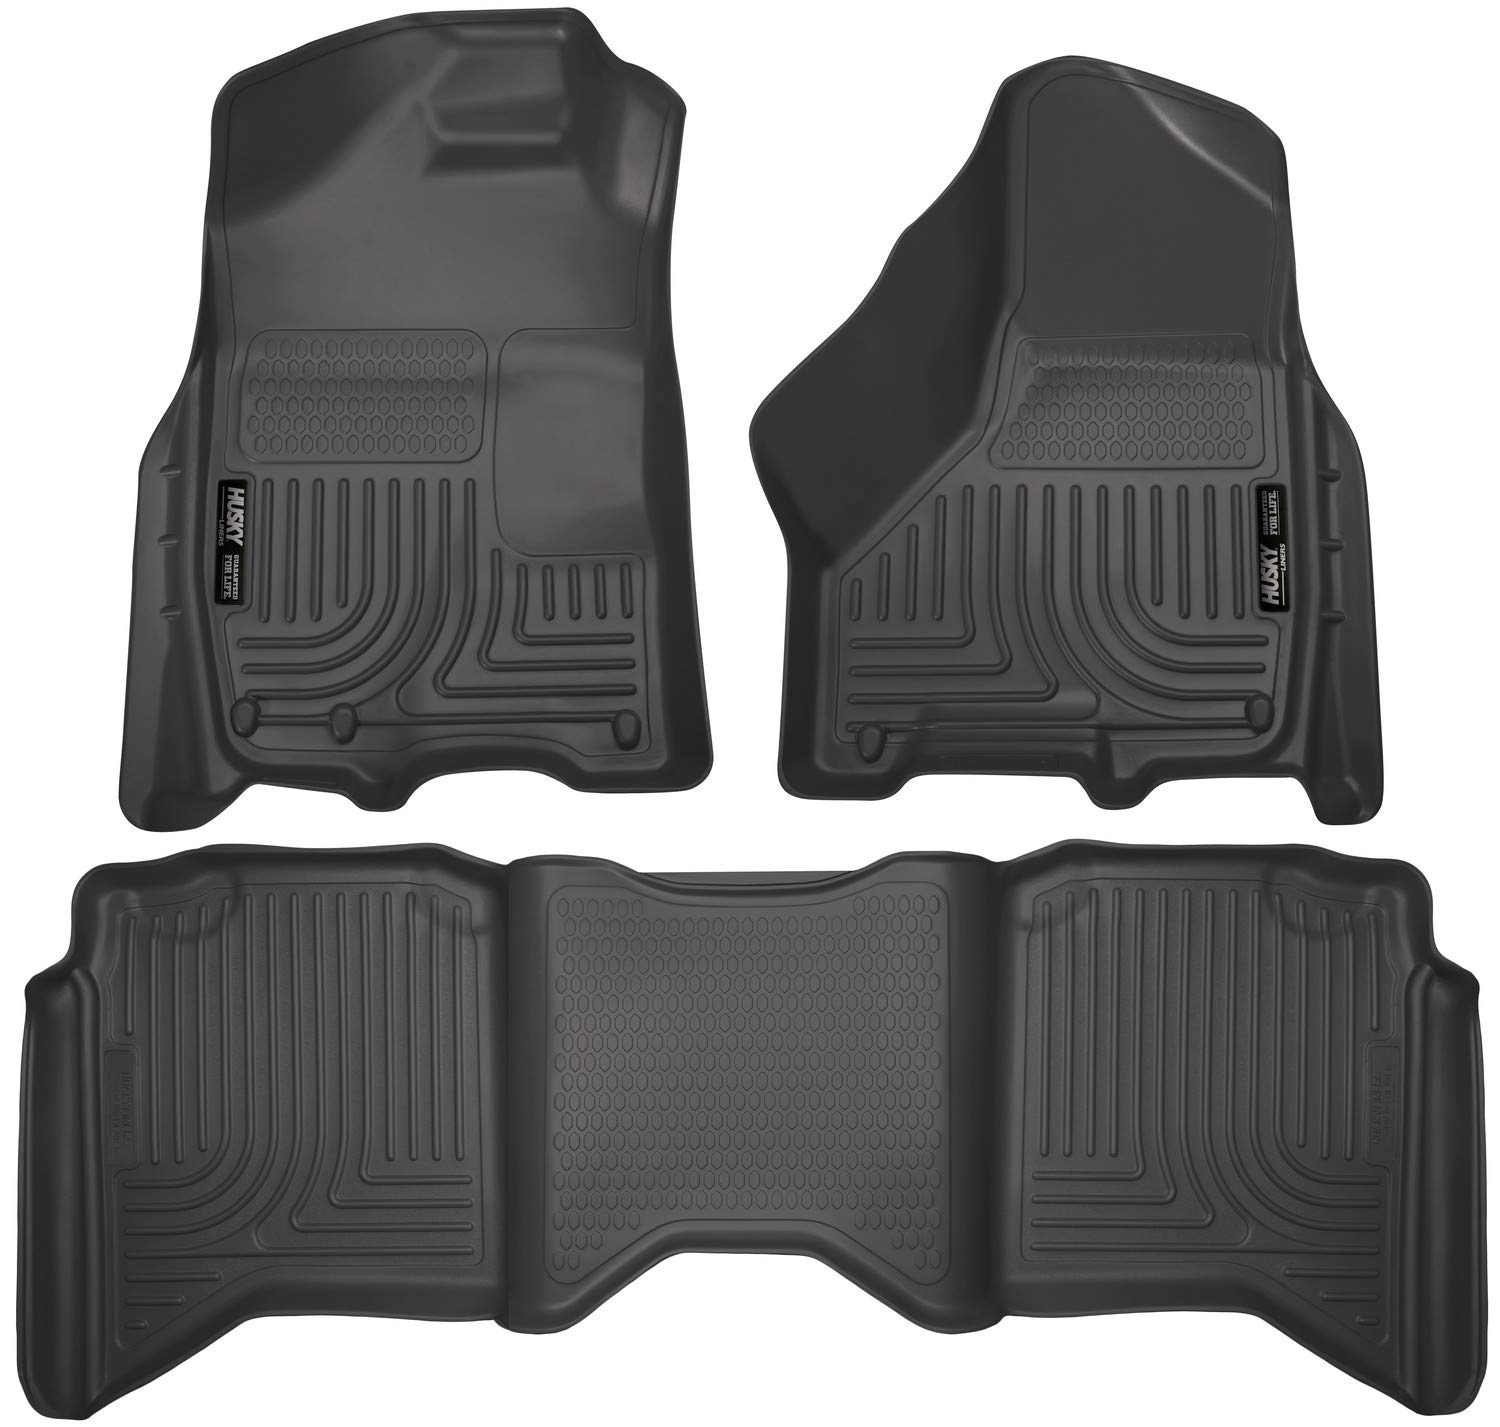 10 Best Truck Floor Mats Buying Guide And Reviews Oct 2019